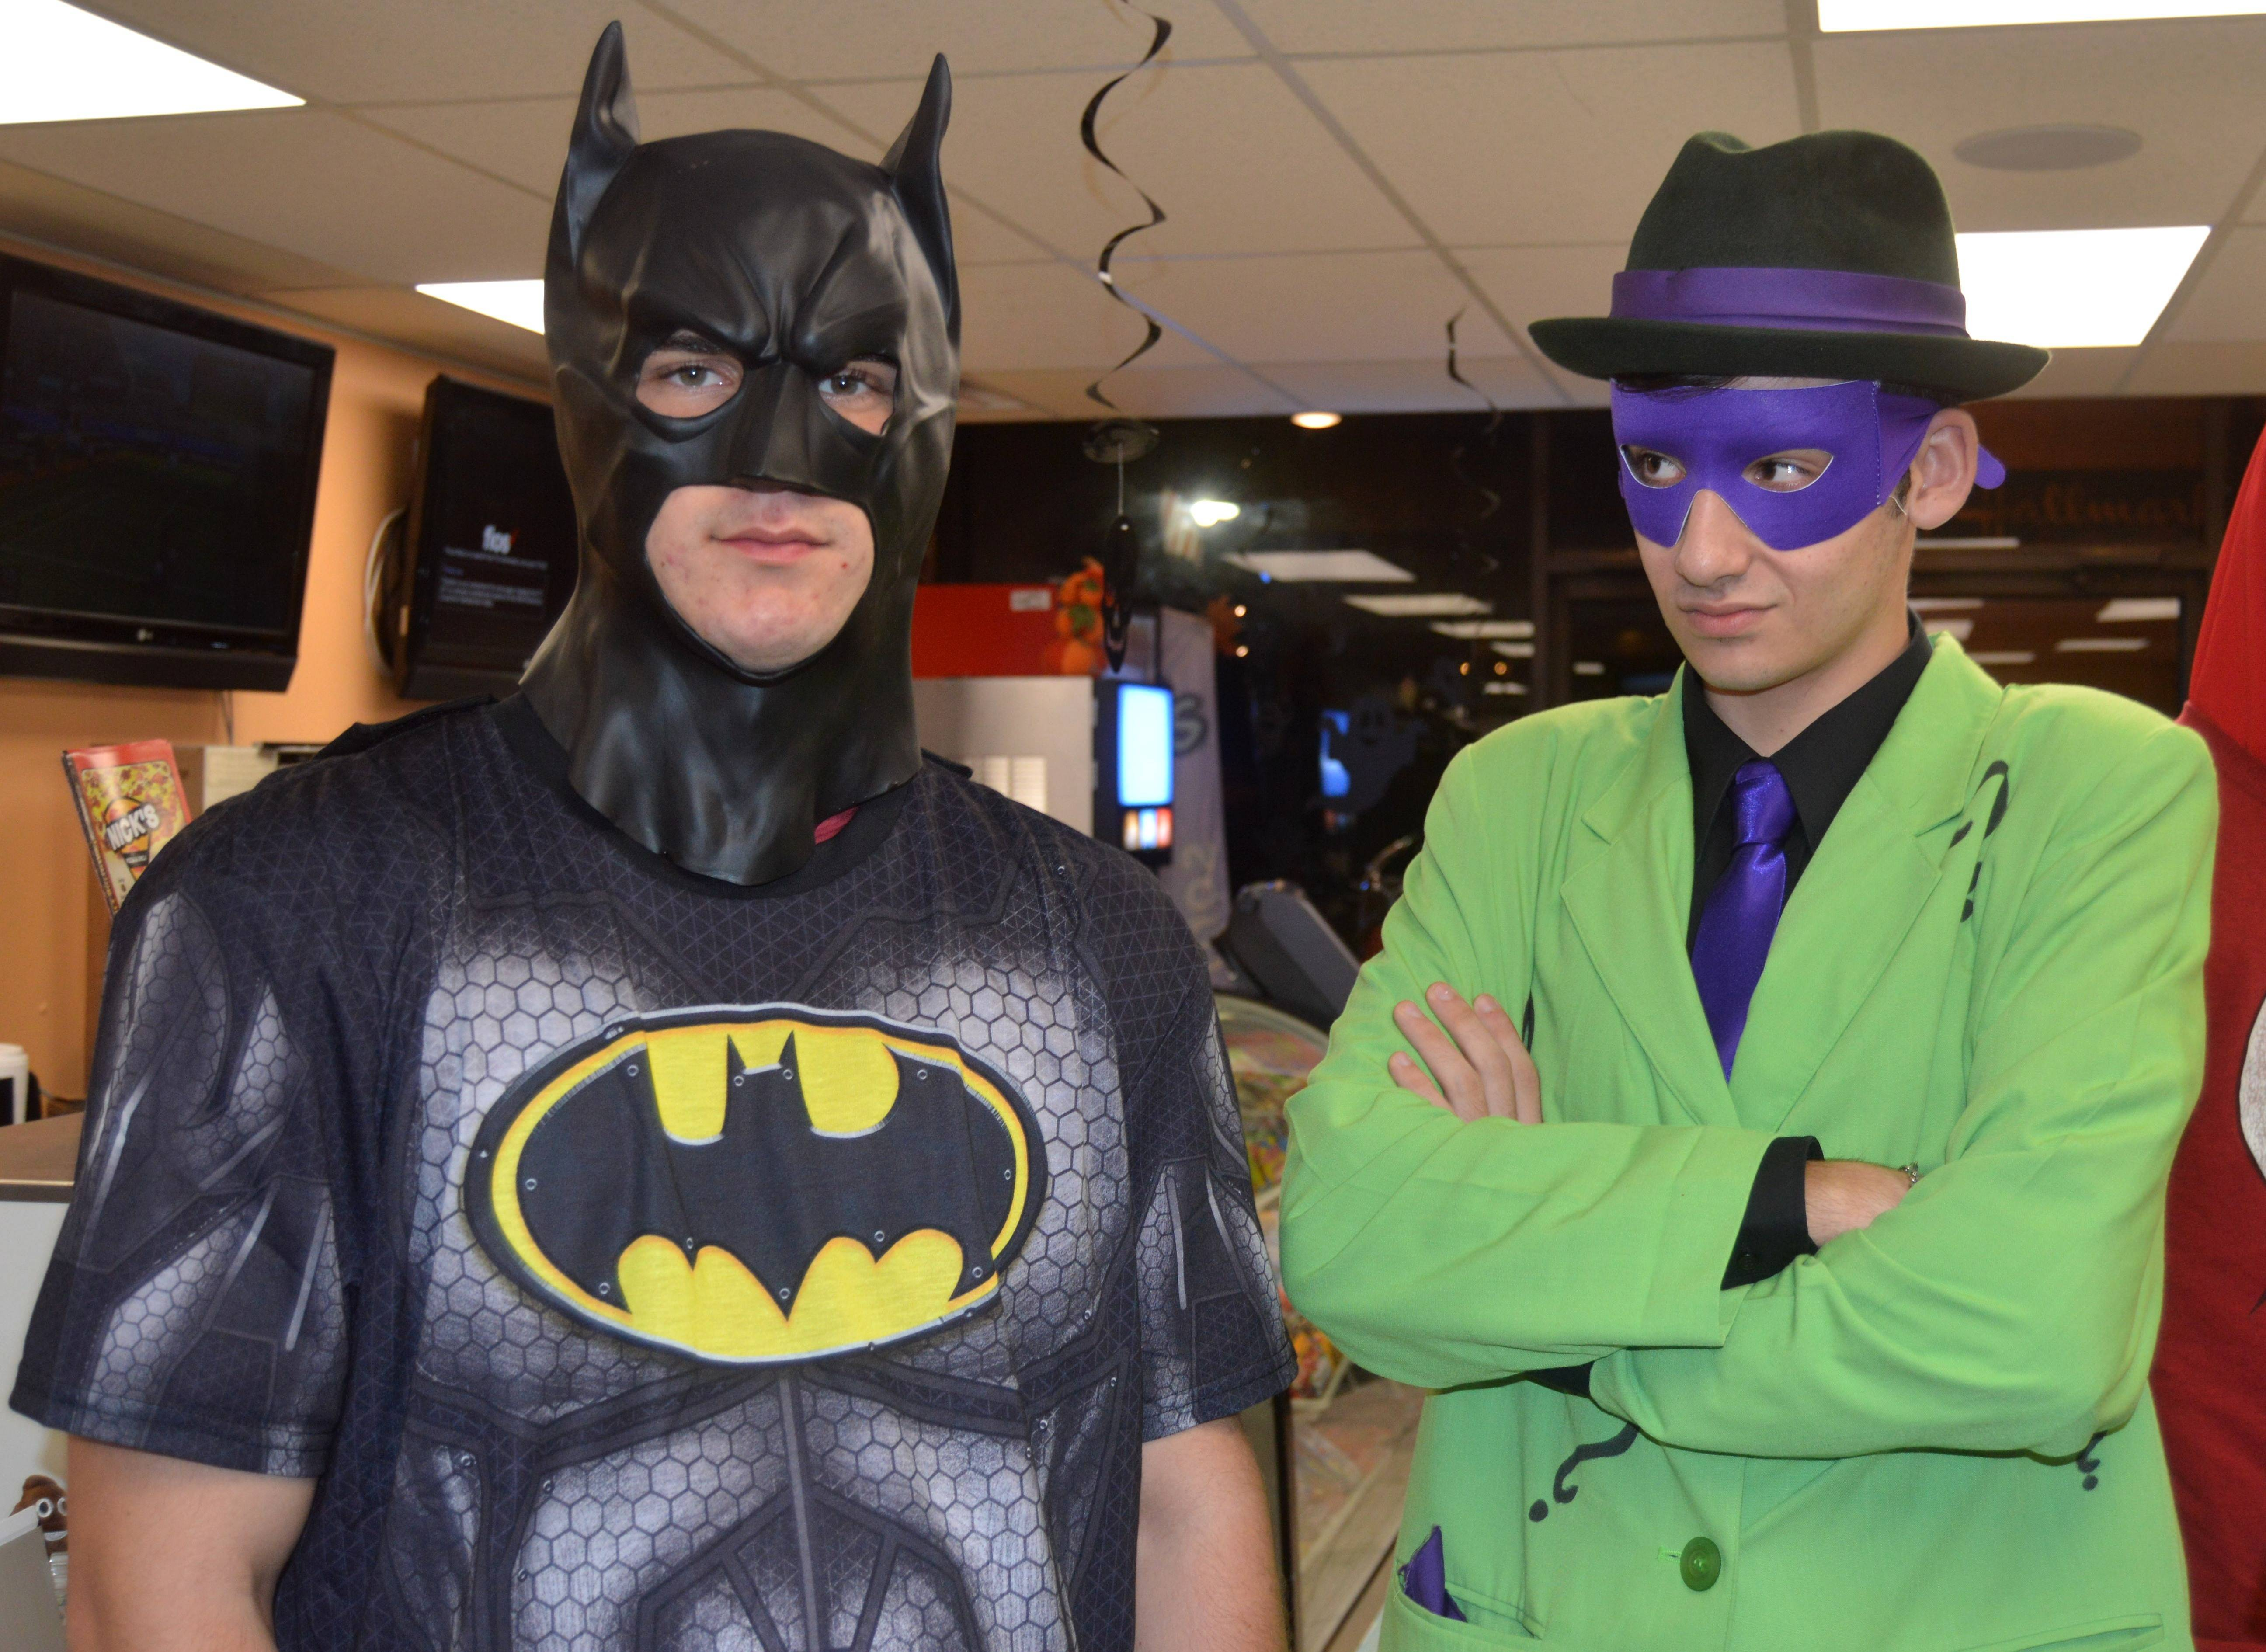 aeecb6d4d77ce72026a3_Nicks_-_Batman_and_Riddler.JPG